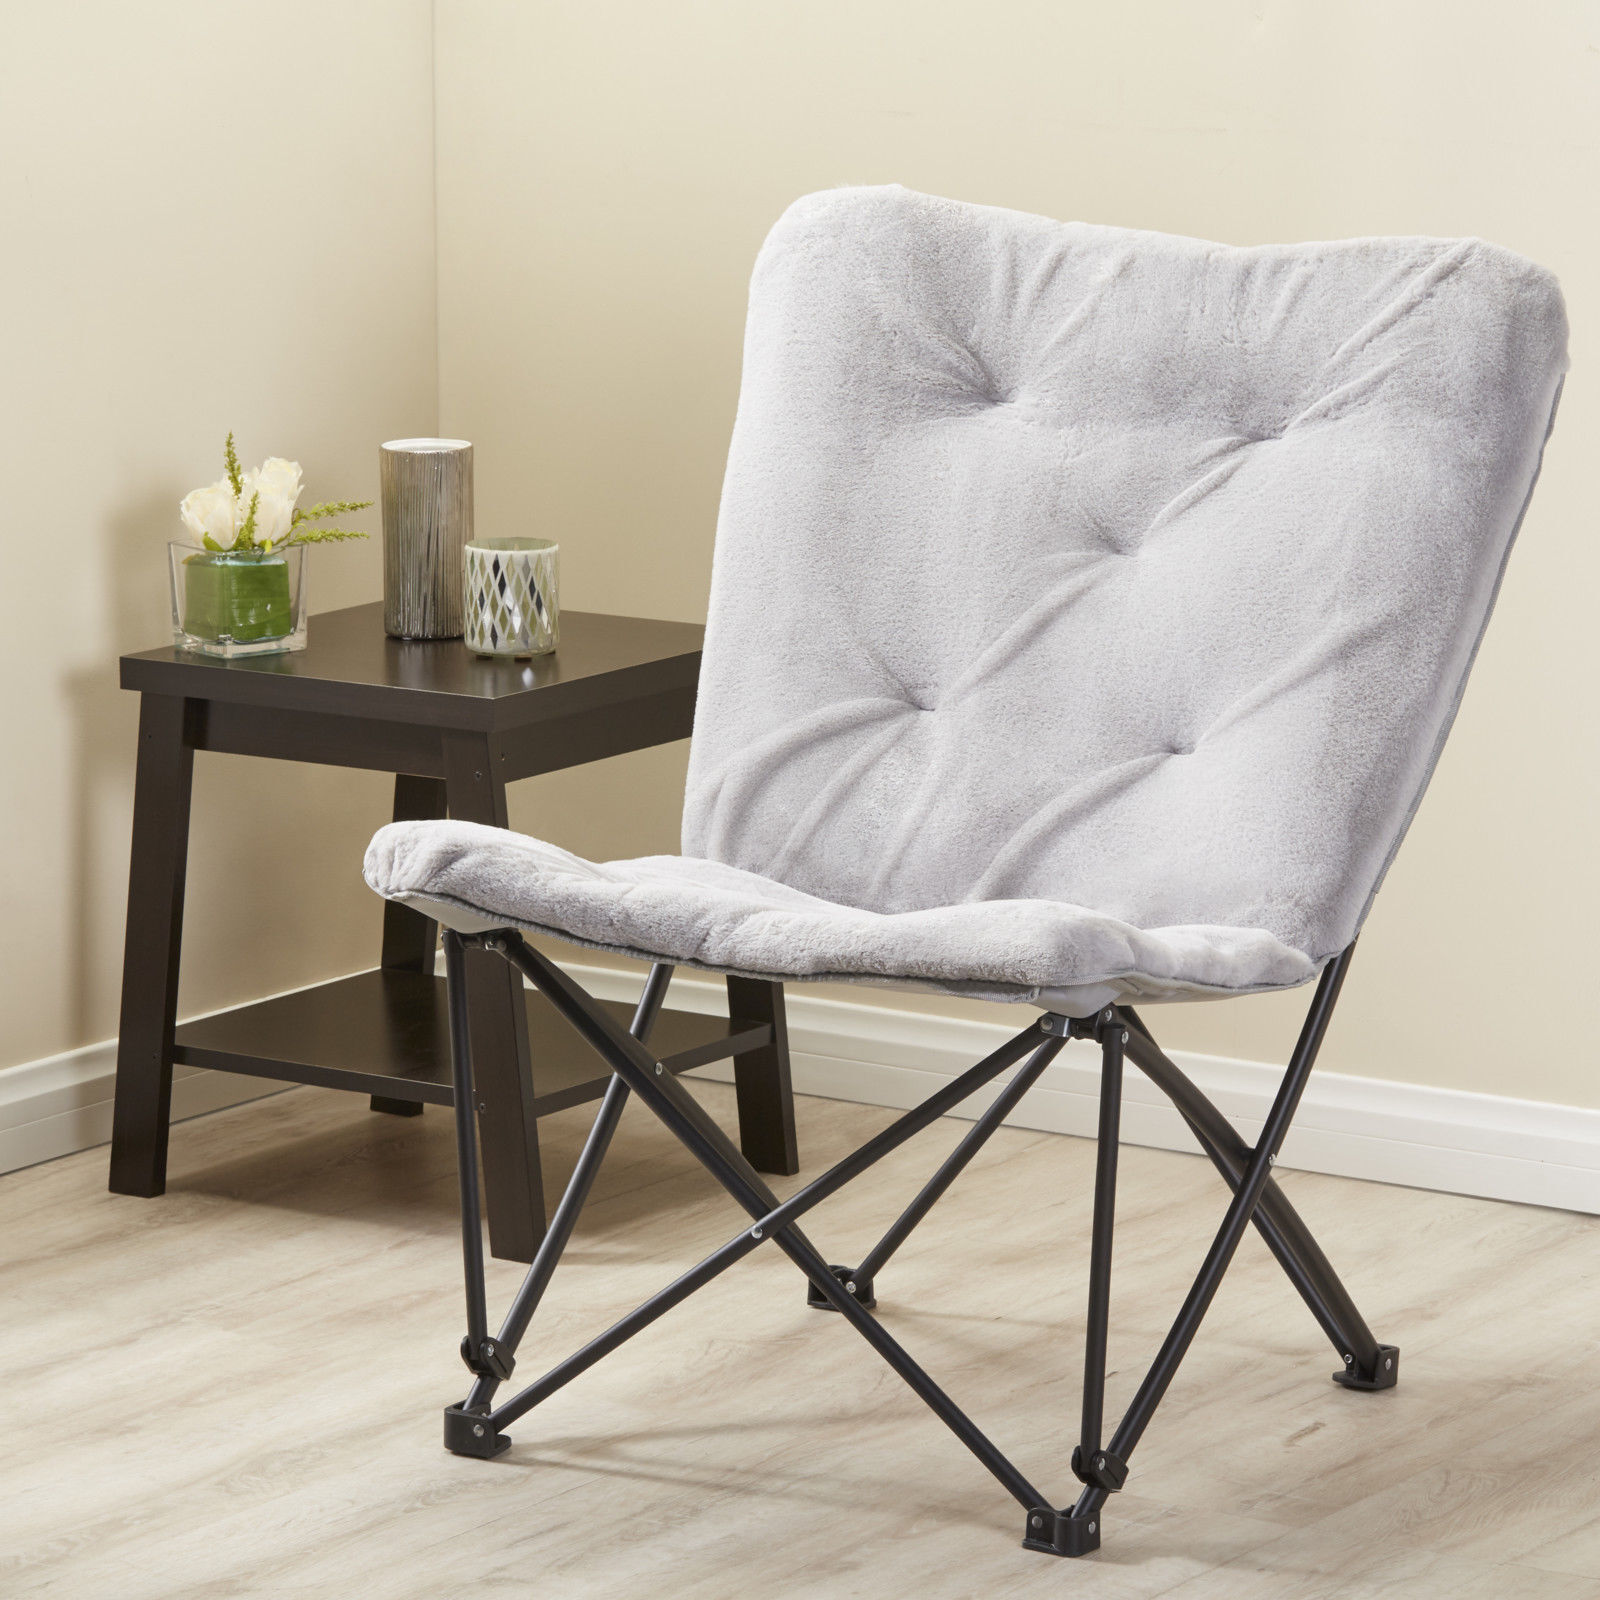 Butterfly Folding Chair Mainstays Memory Foam Folding Butterfly Lounge Chair Silver Color